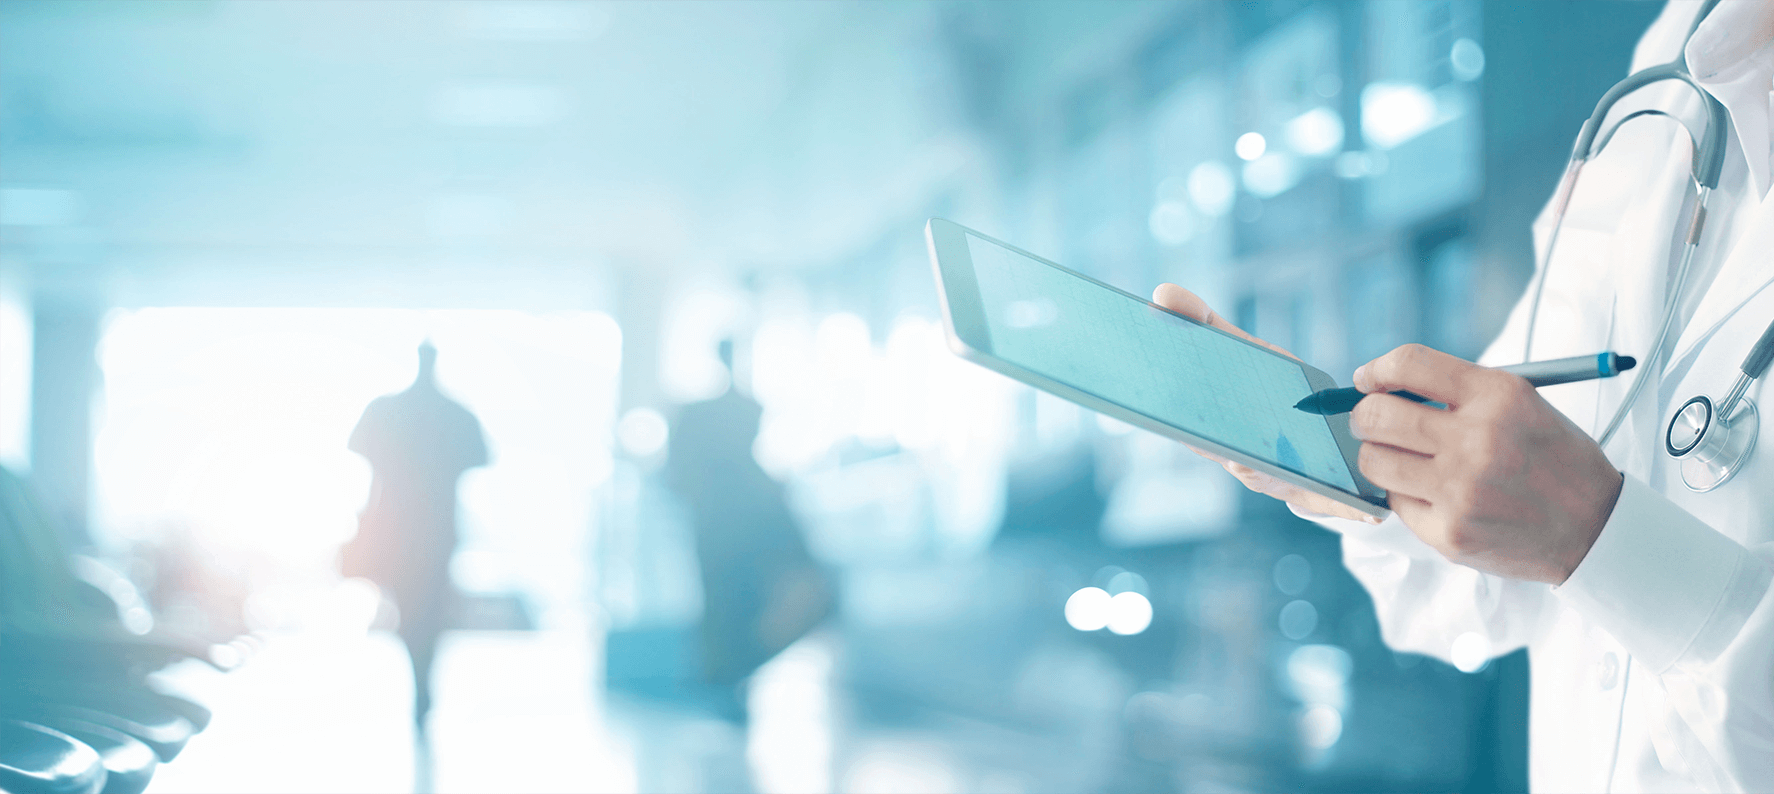 Medicine-doctor-and-stethoscope-touching-medical-information-network-connection-interface-on-digital-tablet-in-hospital-background.-Medical-data-and-technology-network